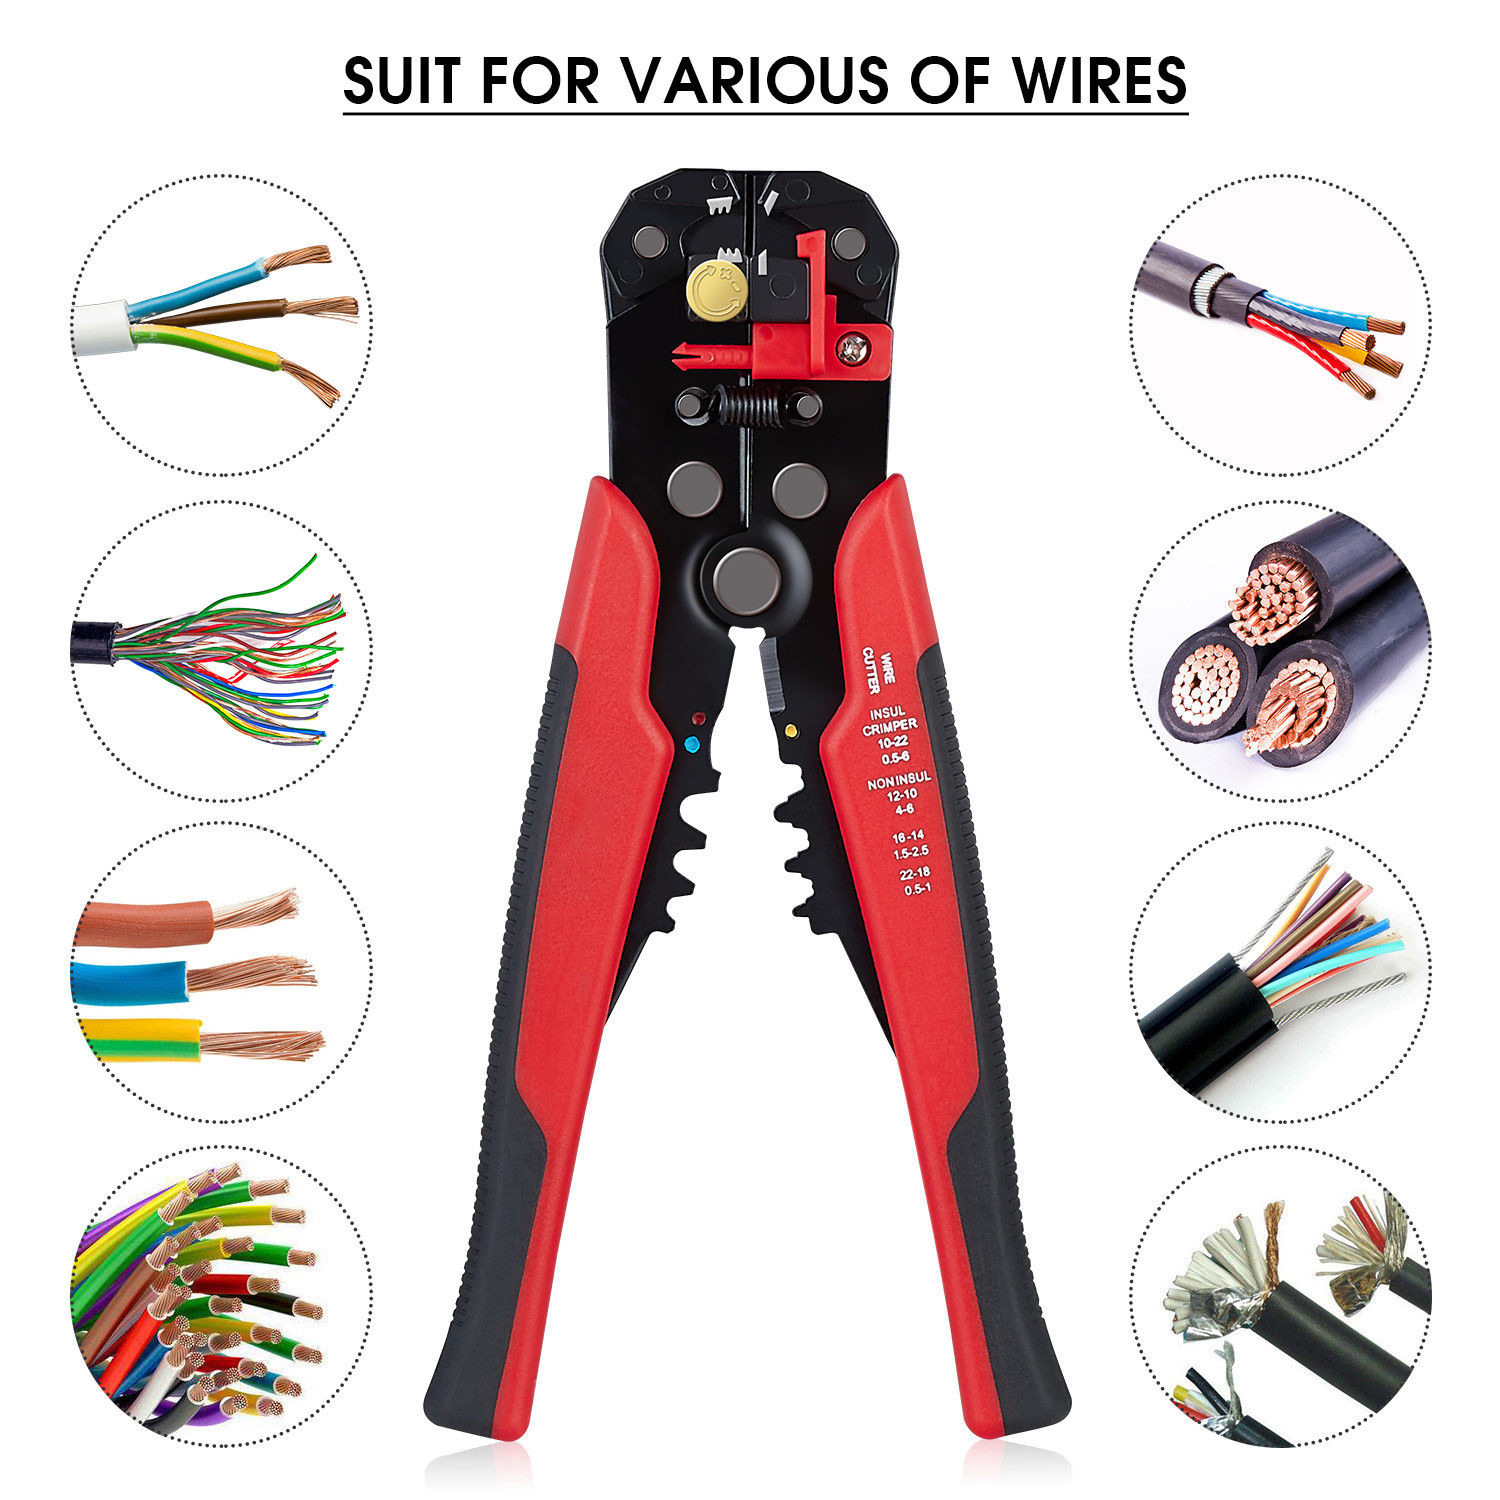 MAIRUIKANG 5-in-1 multi-functional wire stripper automatic wire stripper cutting and crimping pliers